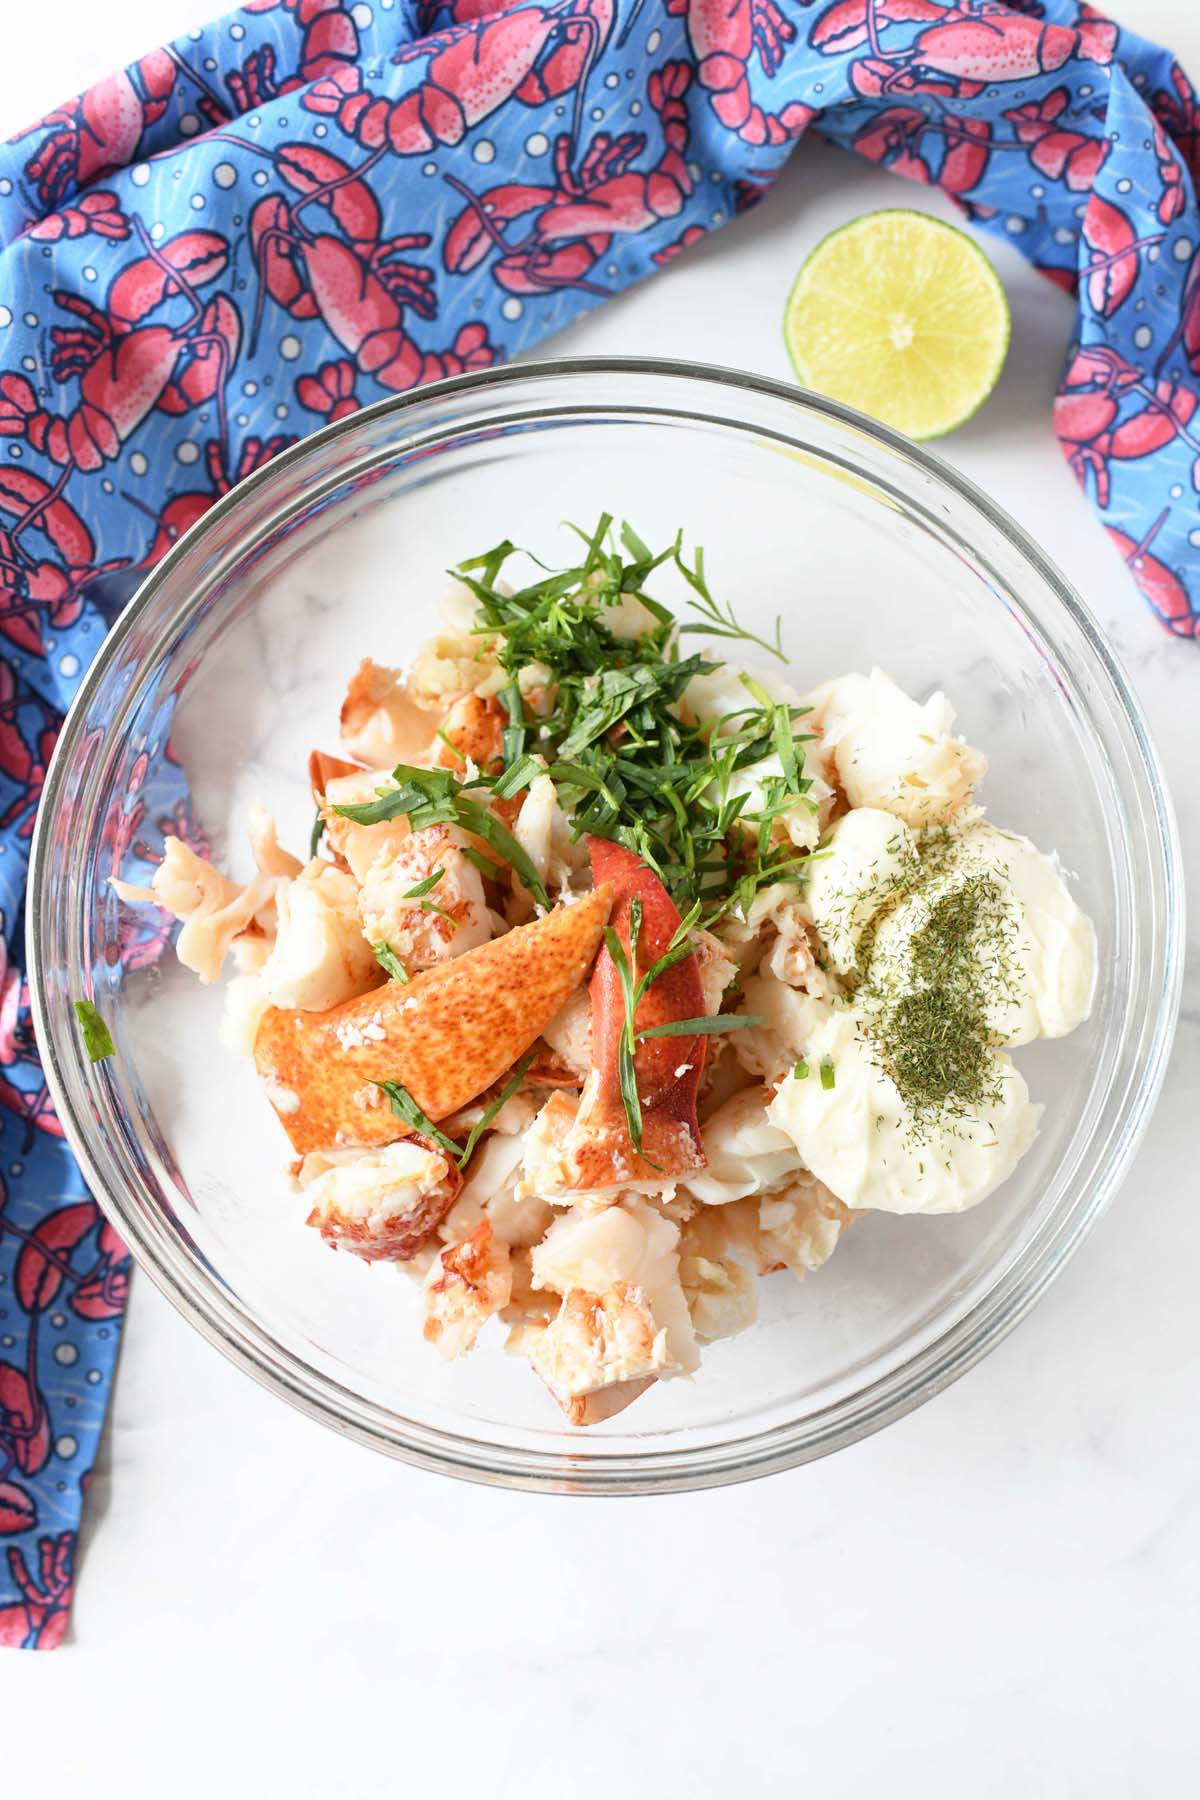 Lobster, mayo, green herbs, and lime in a glass bowl with a lobster napkin.